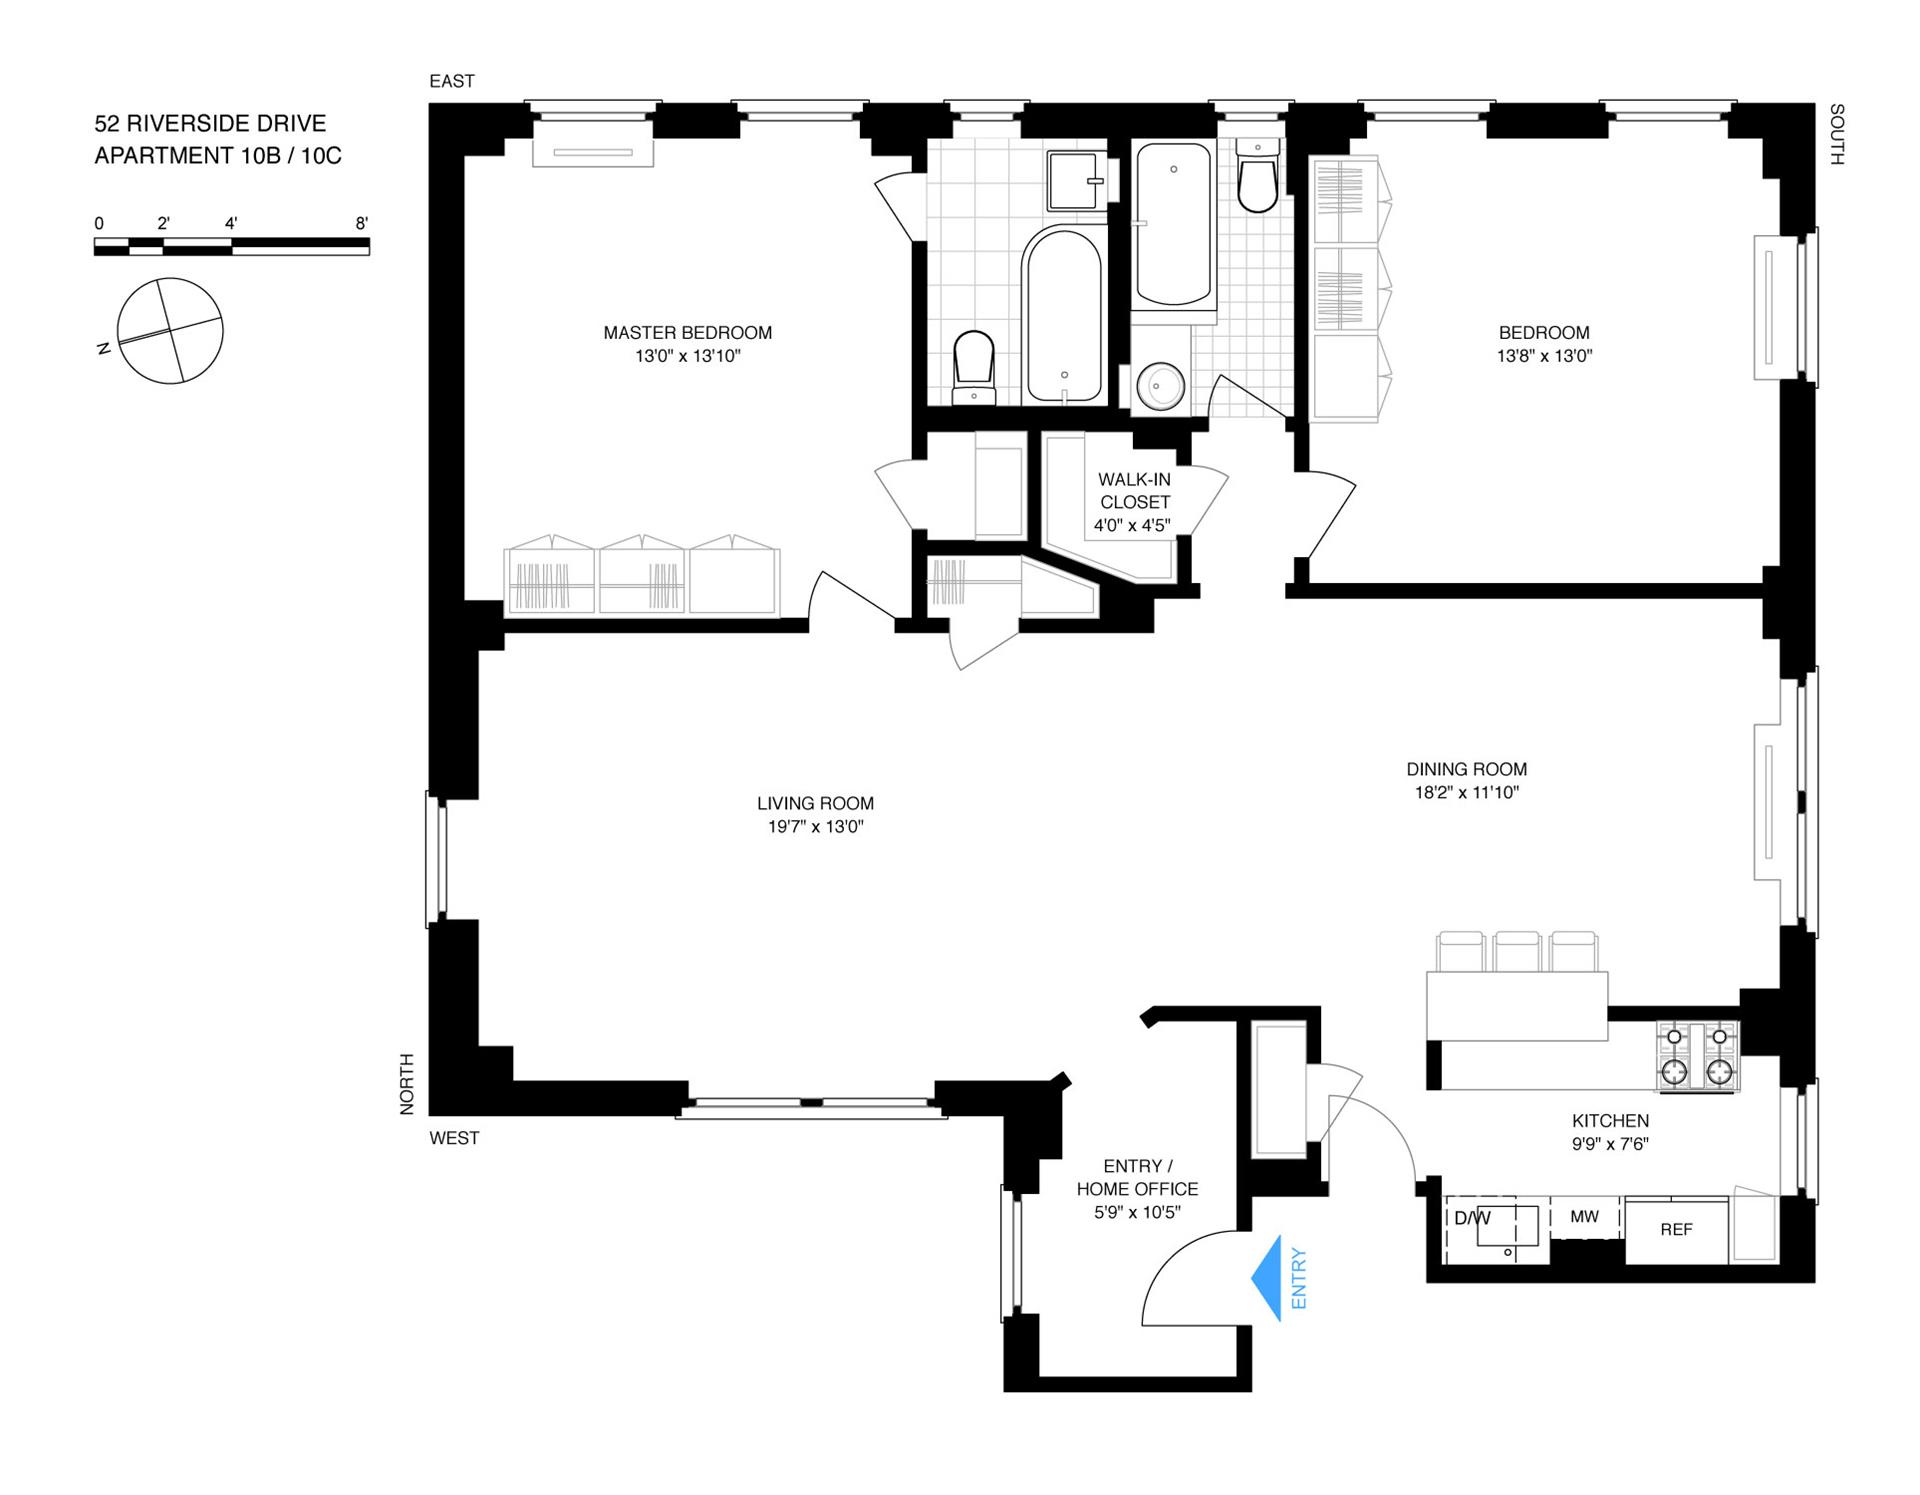 Floor plan of 52 Riverside Drive, 10BC - Upper West Side, New York